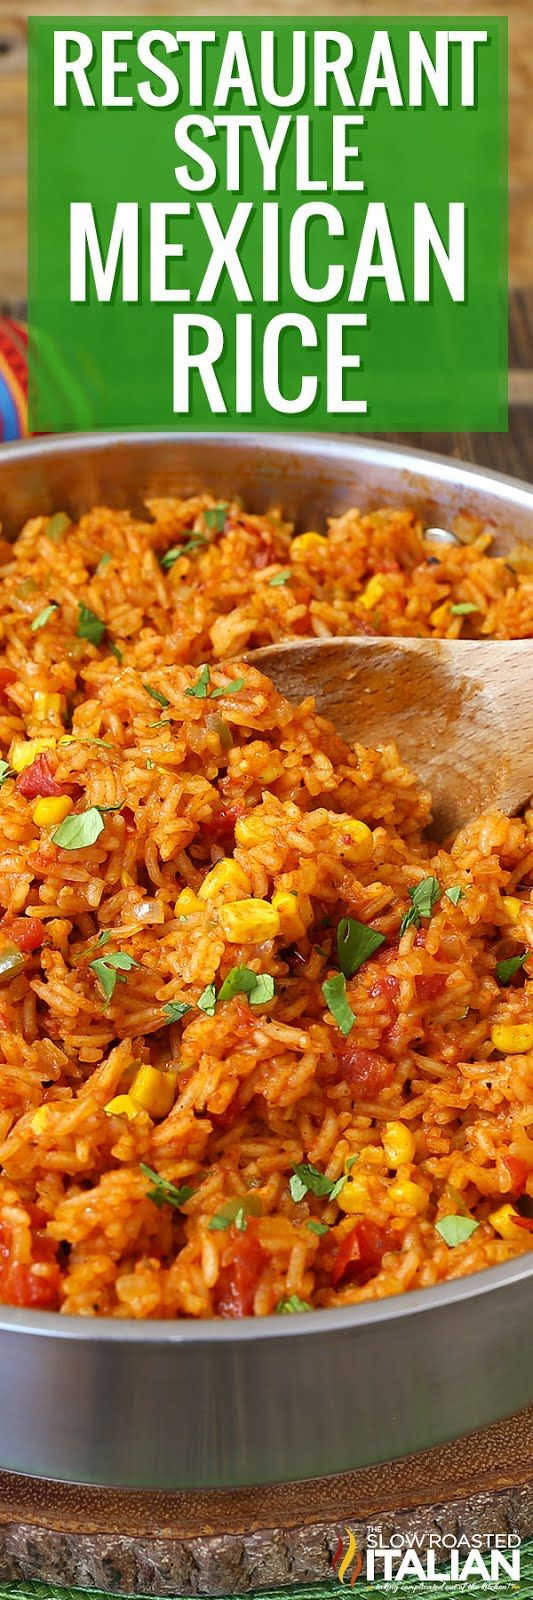 Restaurant-Style Mexican Rice (With VIDEO) Try this on your next Taco Tuesday! #tacotuesday #mexicanrice